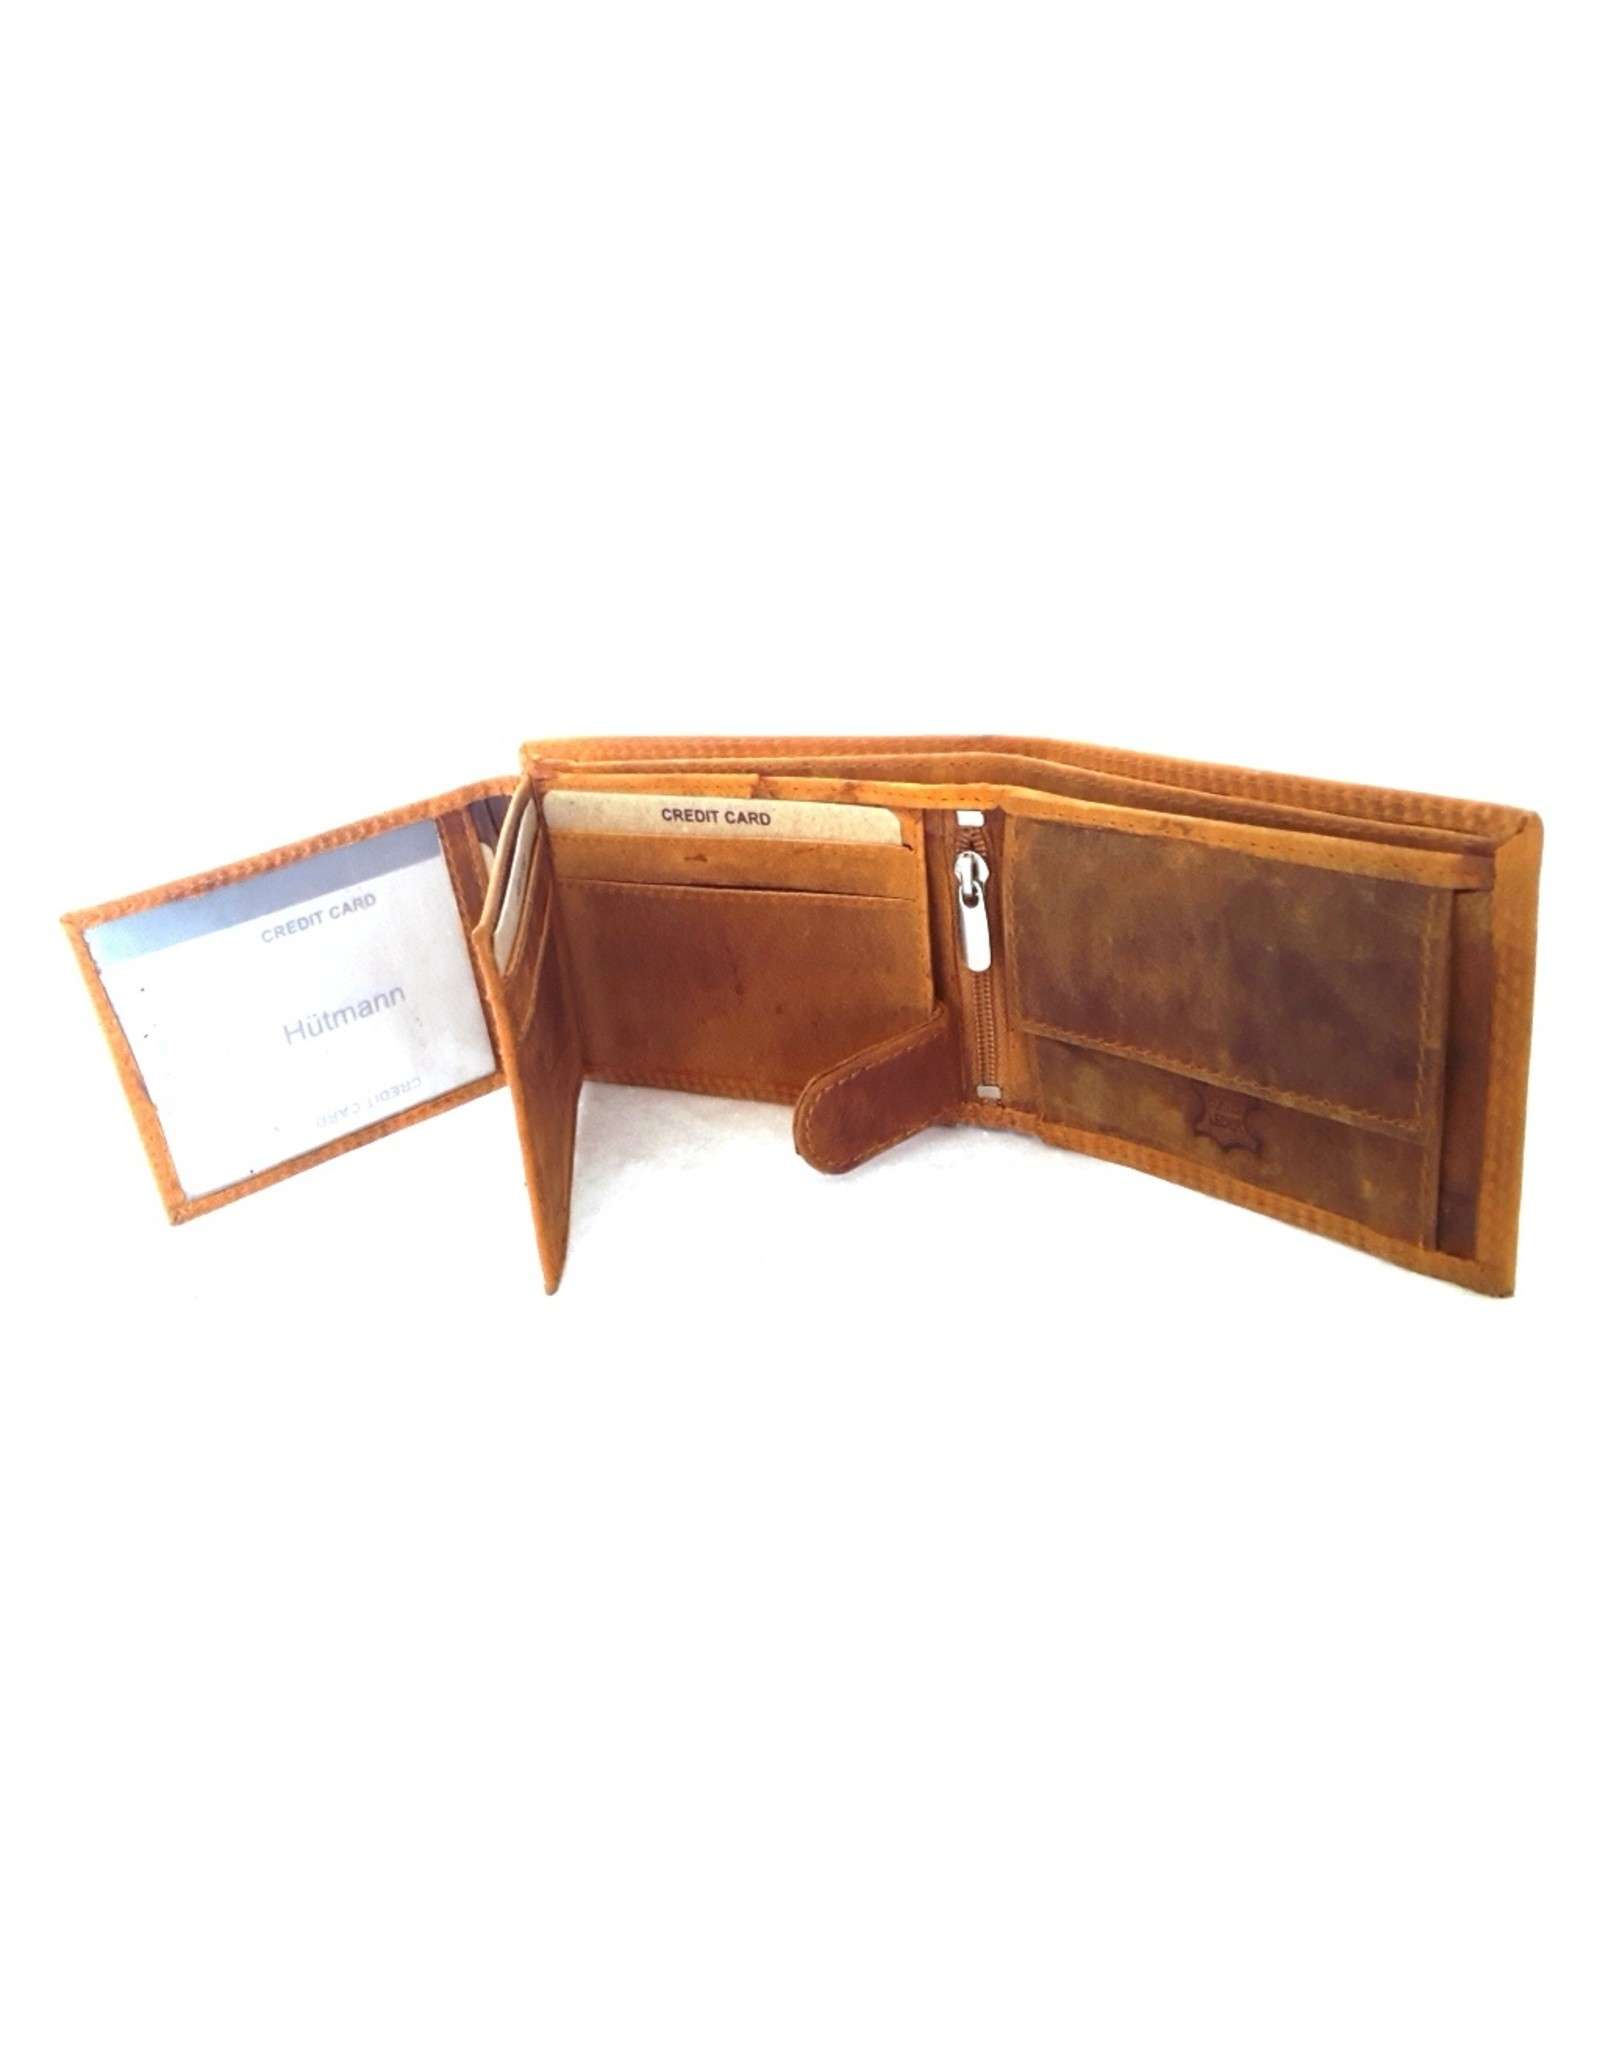 Hutmann Leather Wallets - Leather wallet with embossed horse head (small)